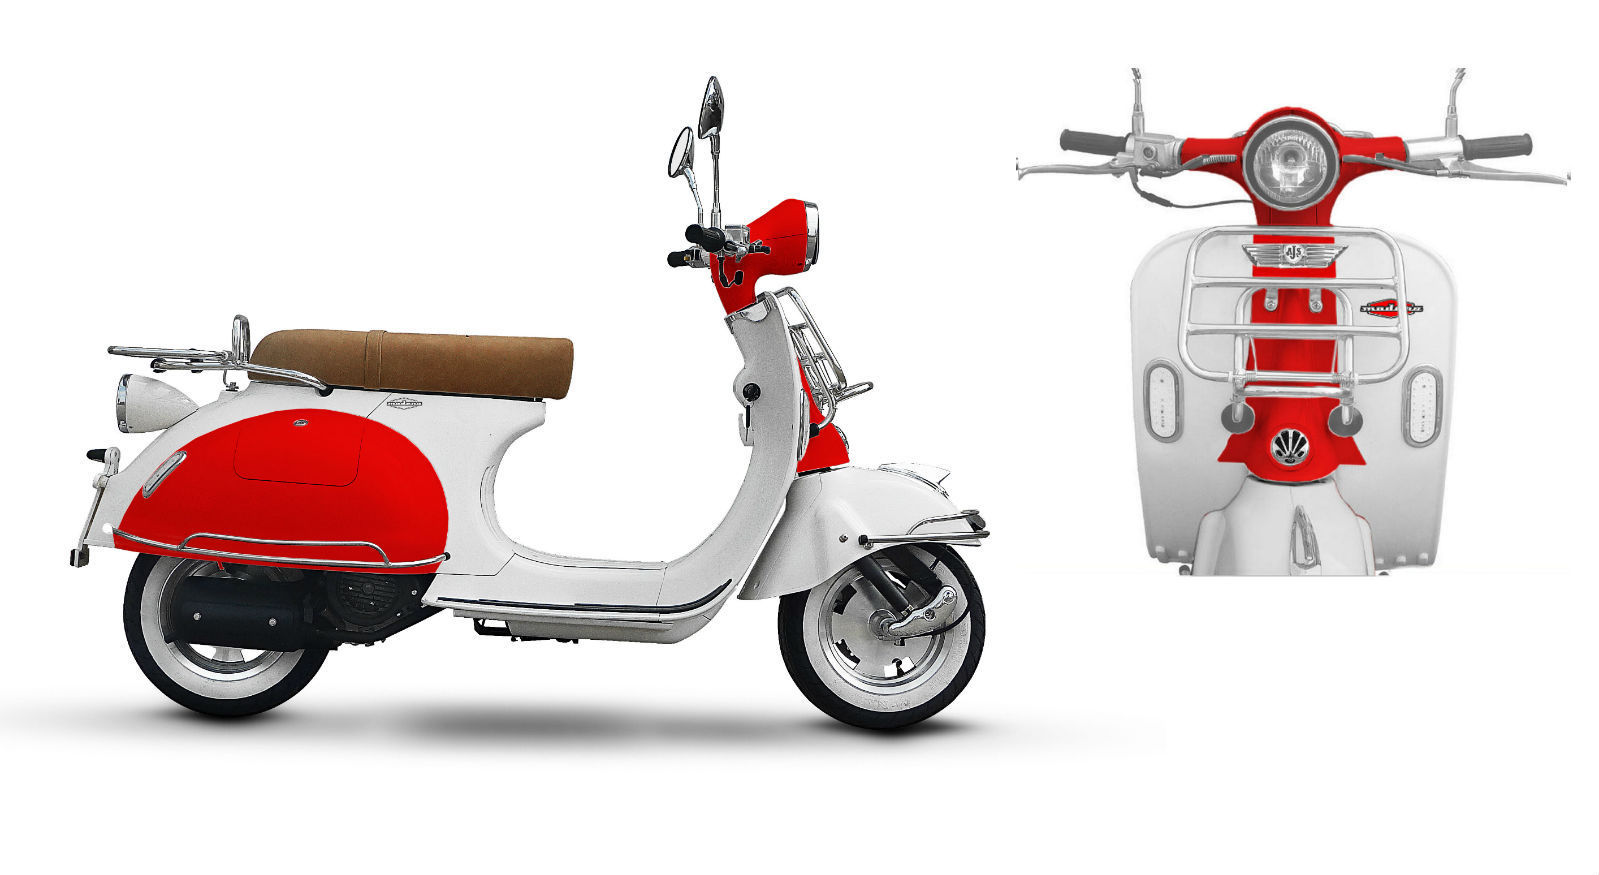 ajs modena 125 white or black retro looking scooter. Black Bedroom Furniture Sets. Home Design Ideas